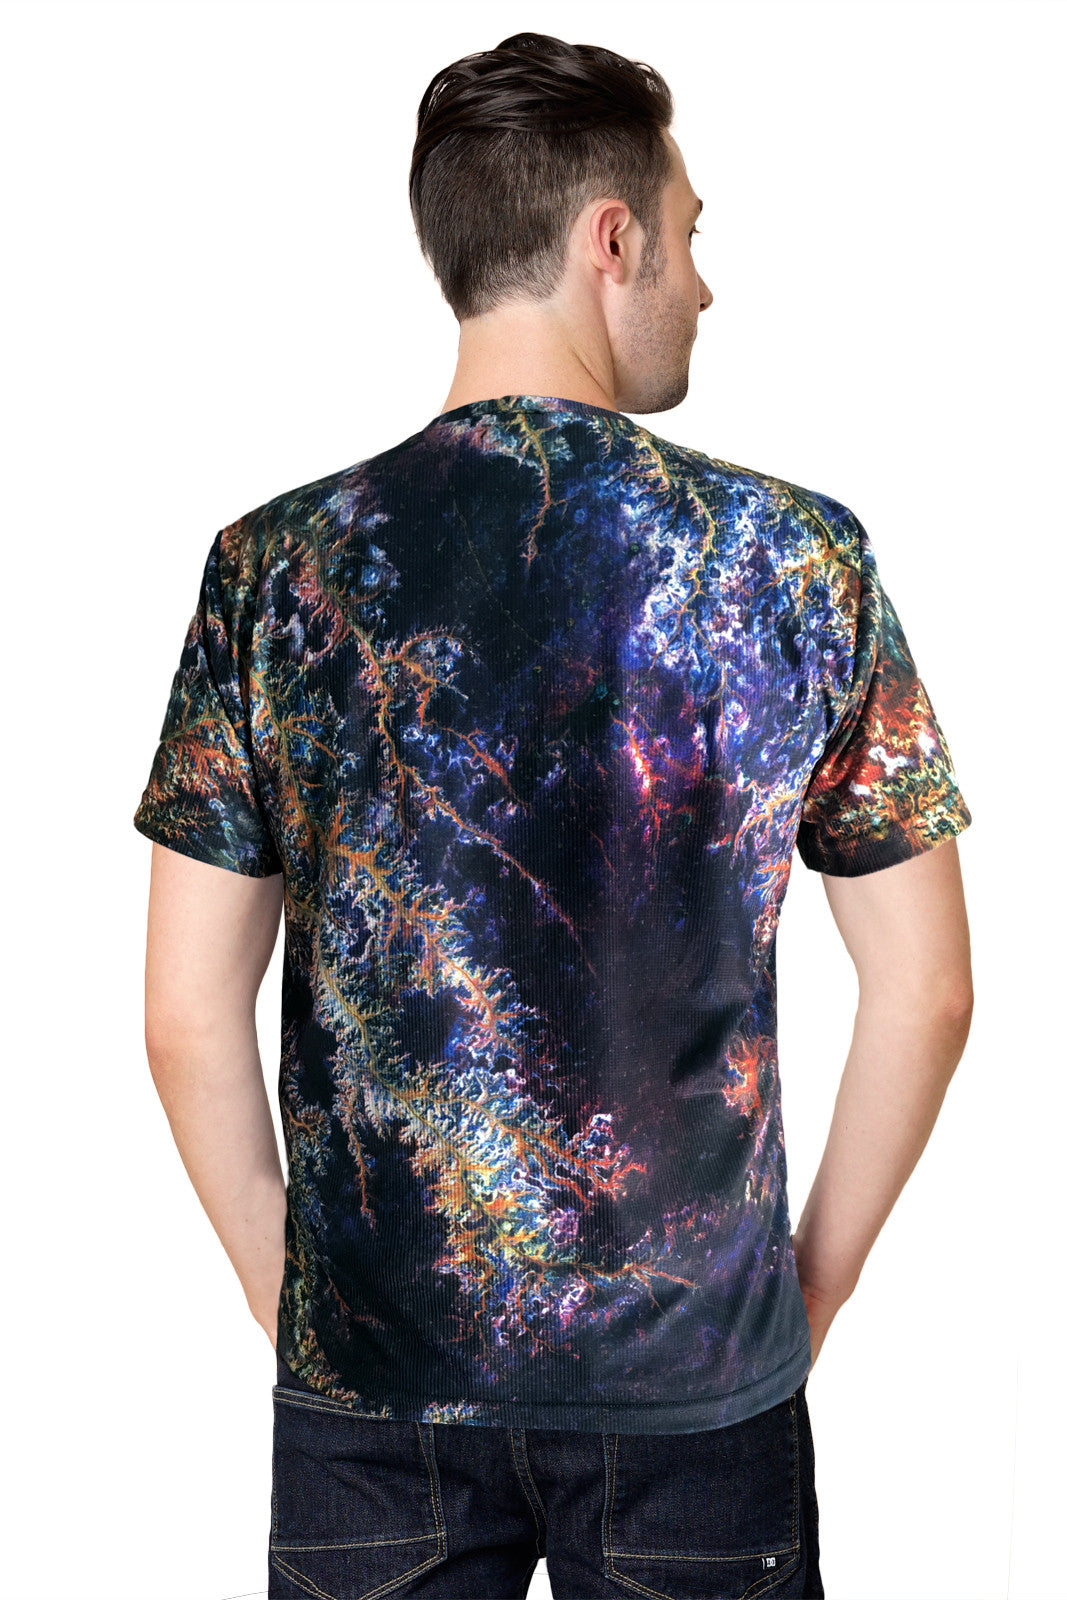 Mens Short Sleeve T-shirt- Printed Image of Earth - Cool Activewear - Ghadamis River